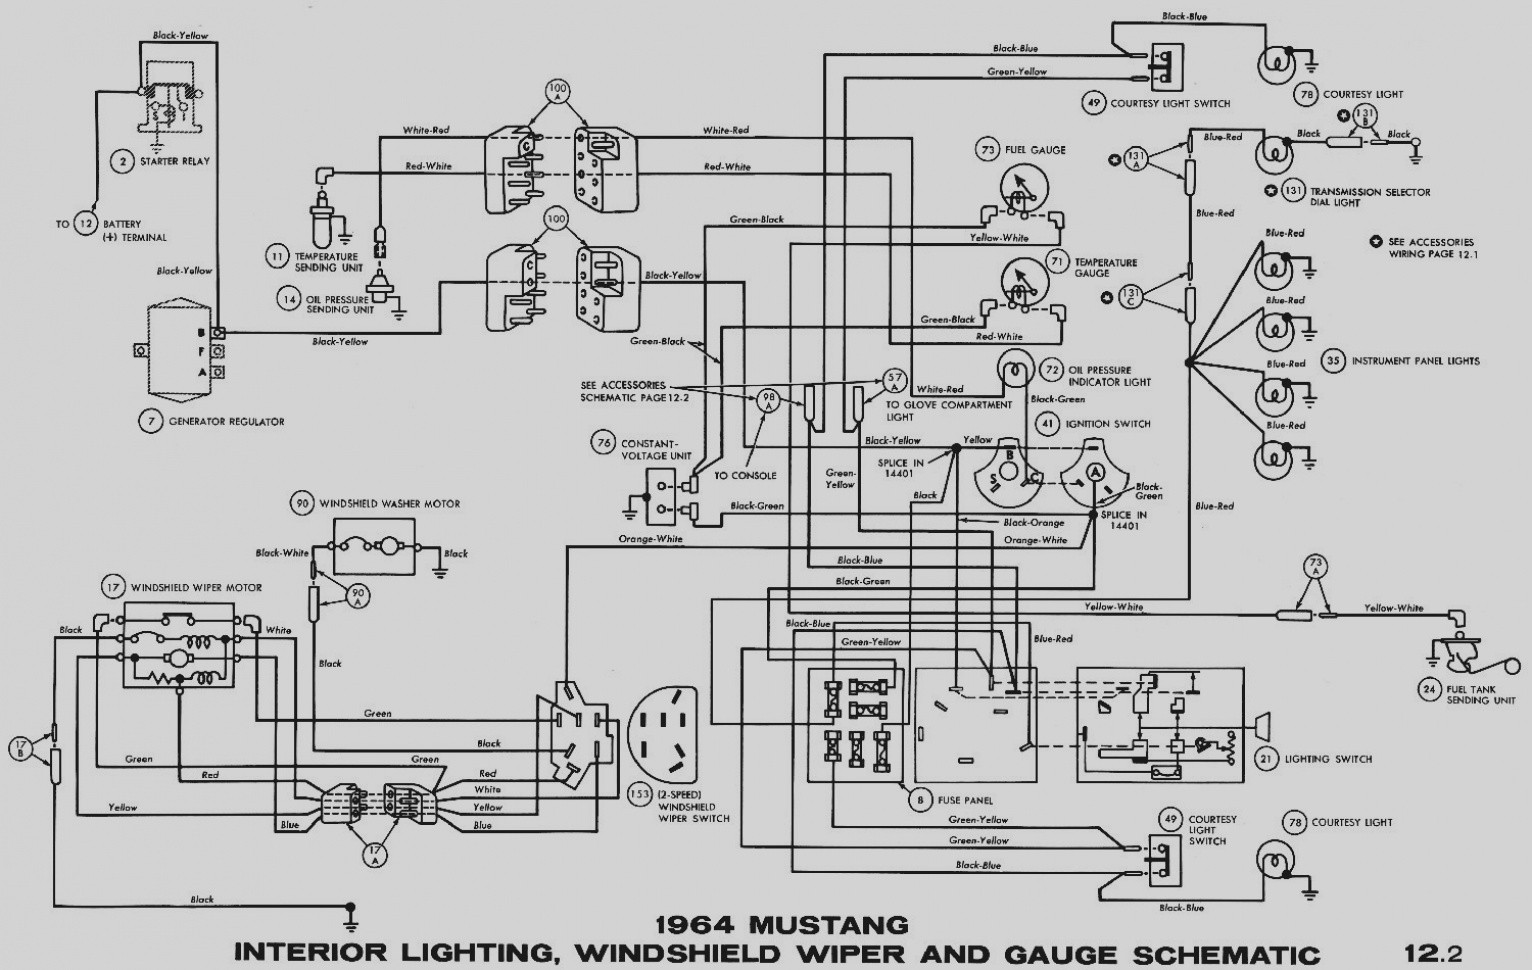 small resolution of 1965 mustang wiring schematic free wiring diagram loc mustang wiring diagram 69 1965 mustang wiring schematic